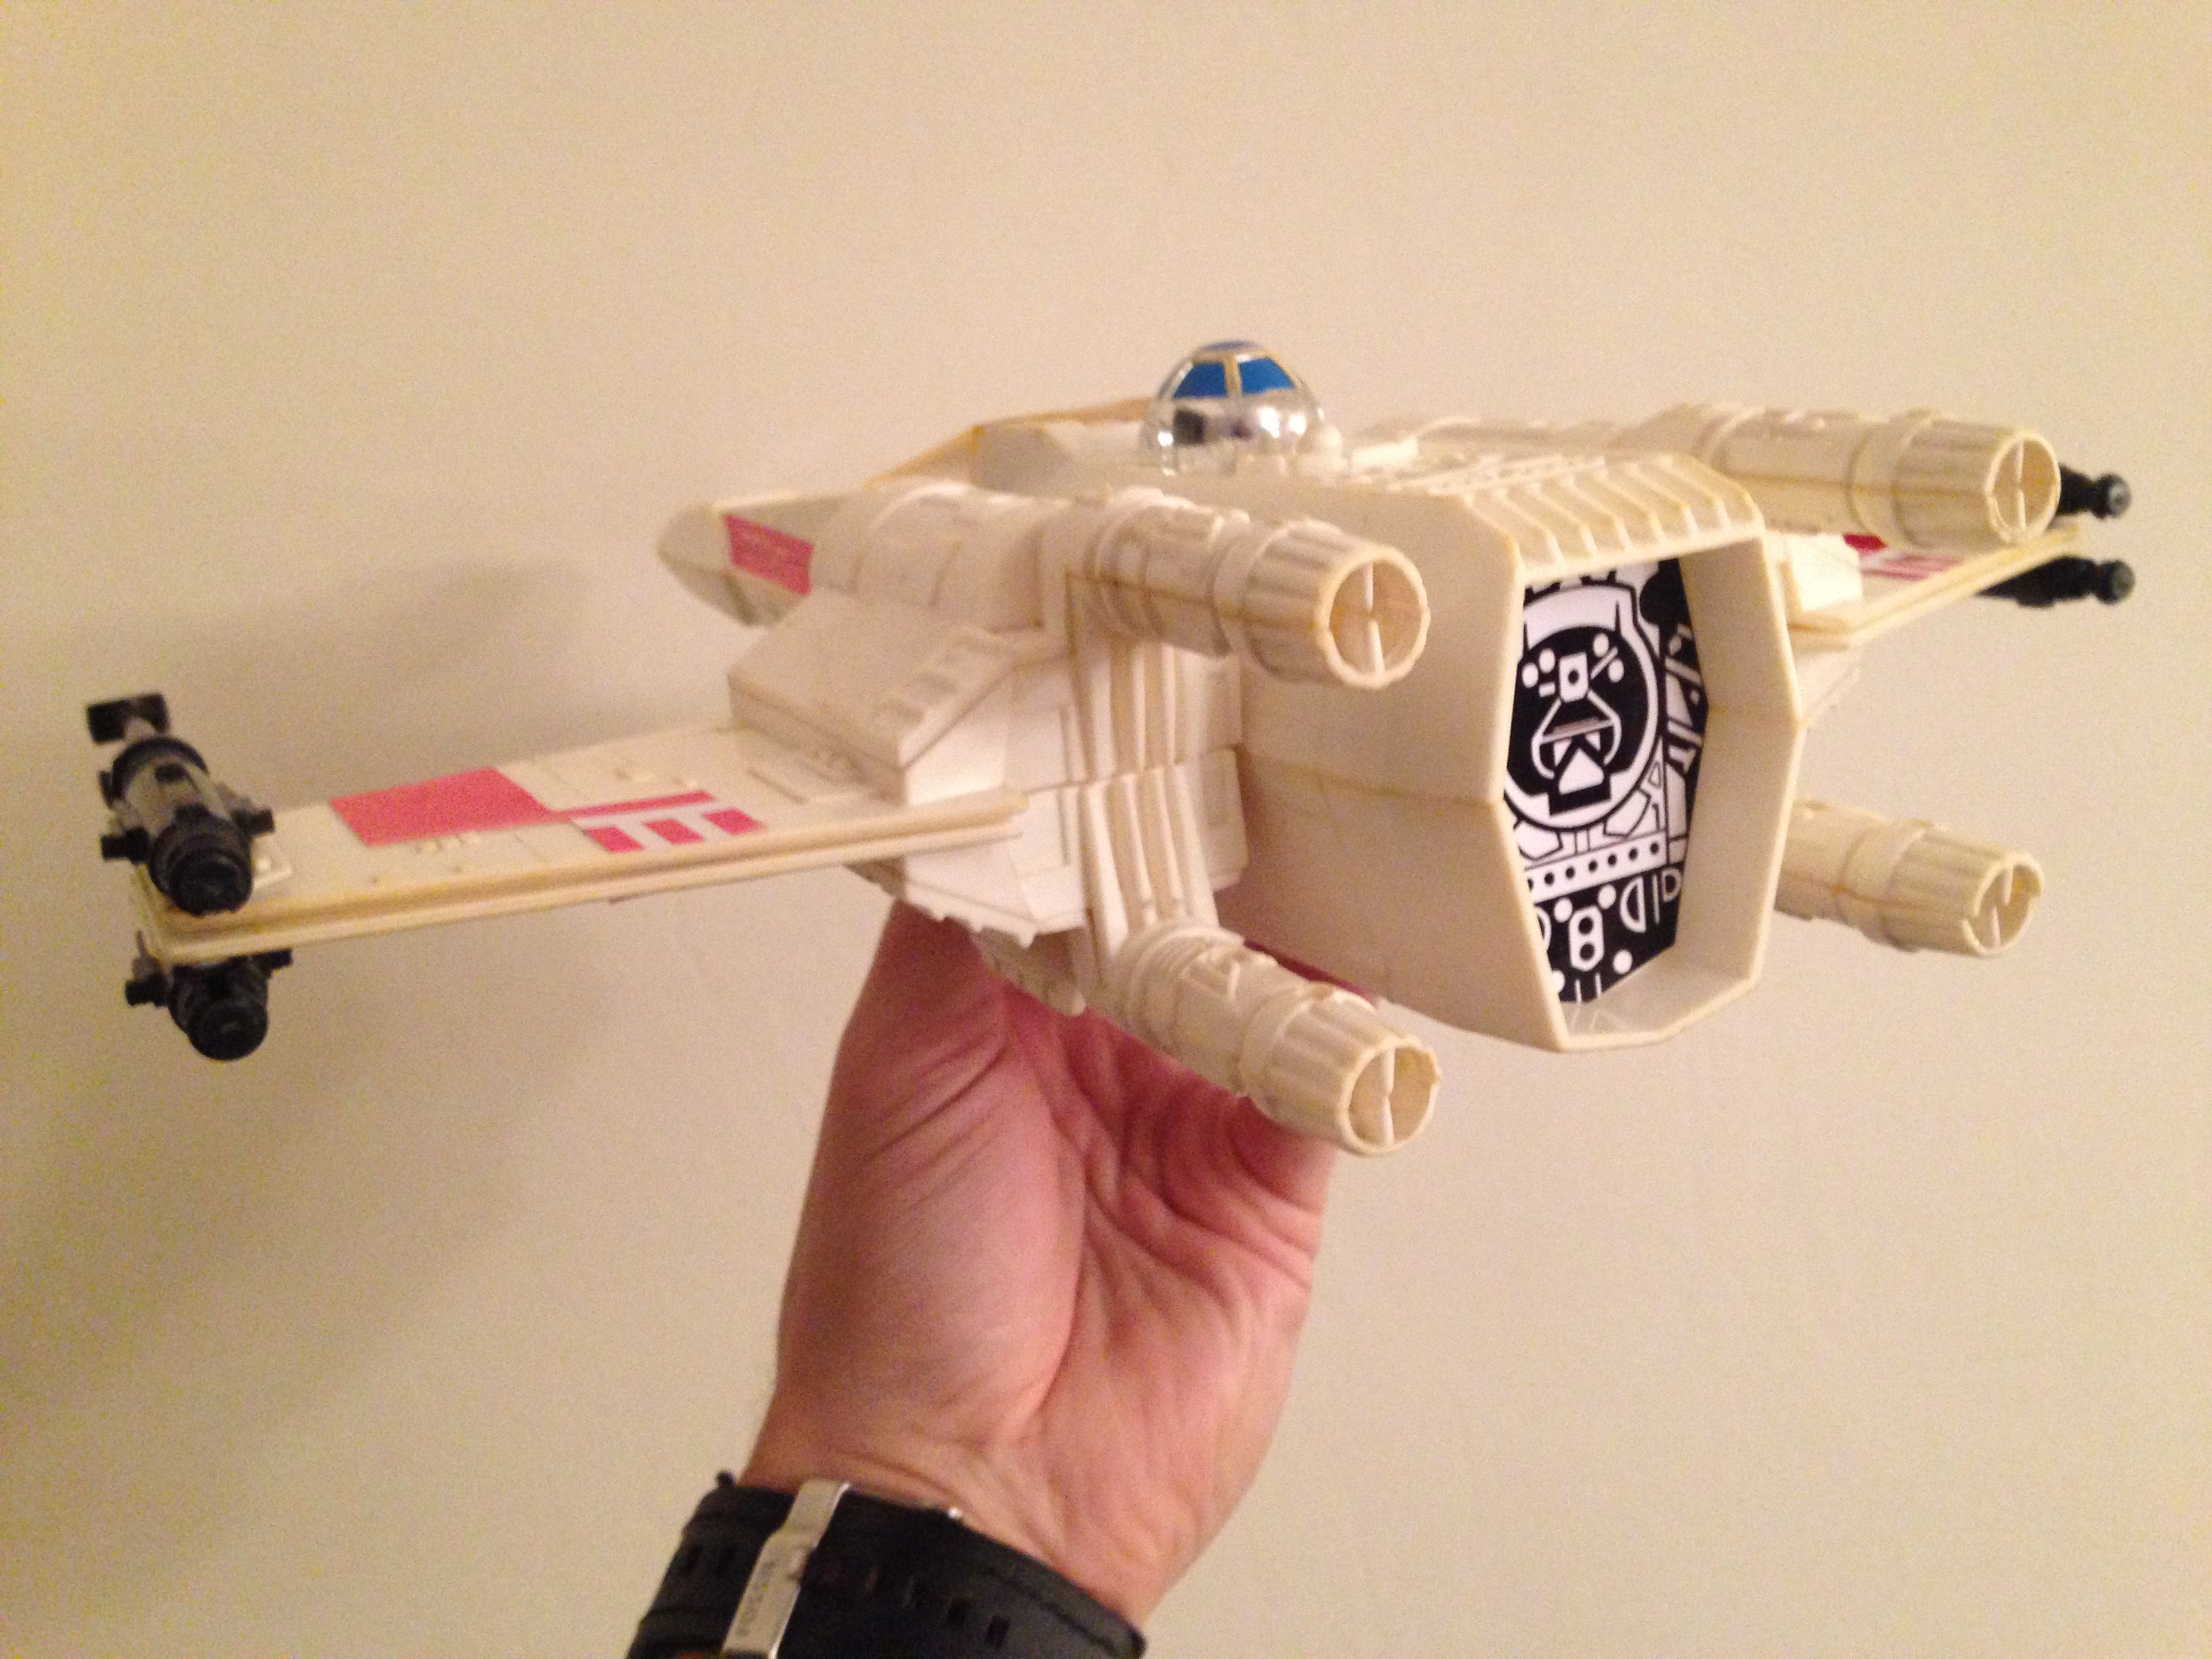 Restored Original 1977 Palitoy Kenner X Wing Fighter Vintage Star Wars Toys Vintage Star Wars Star Wars Toys